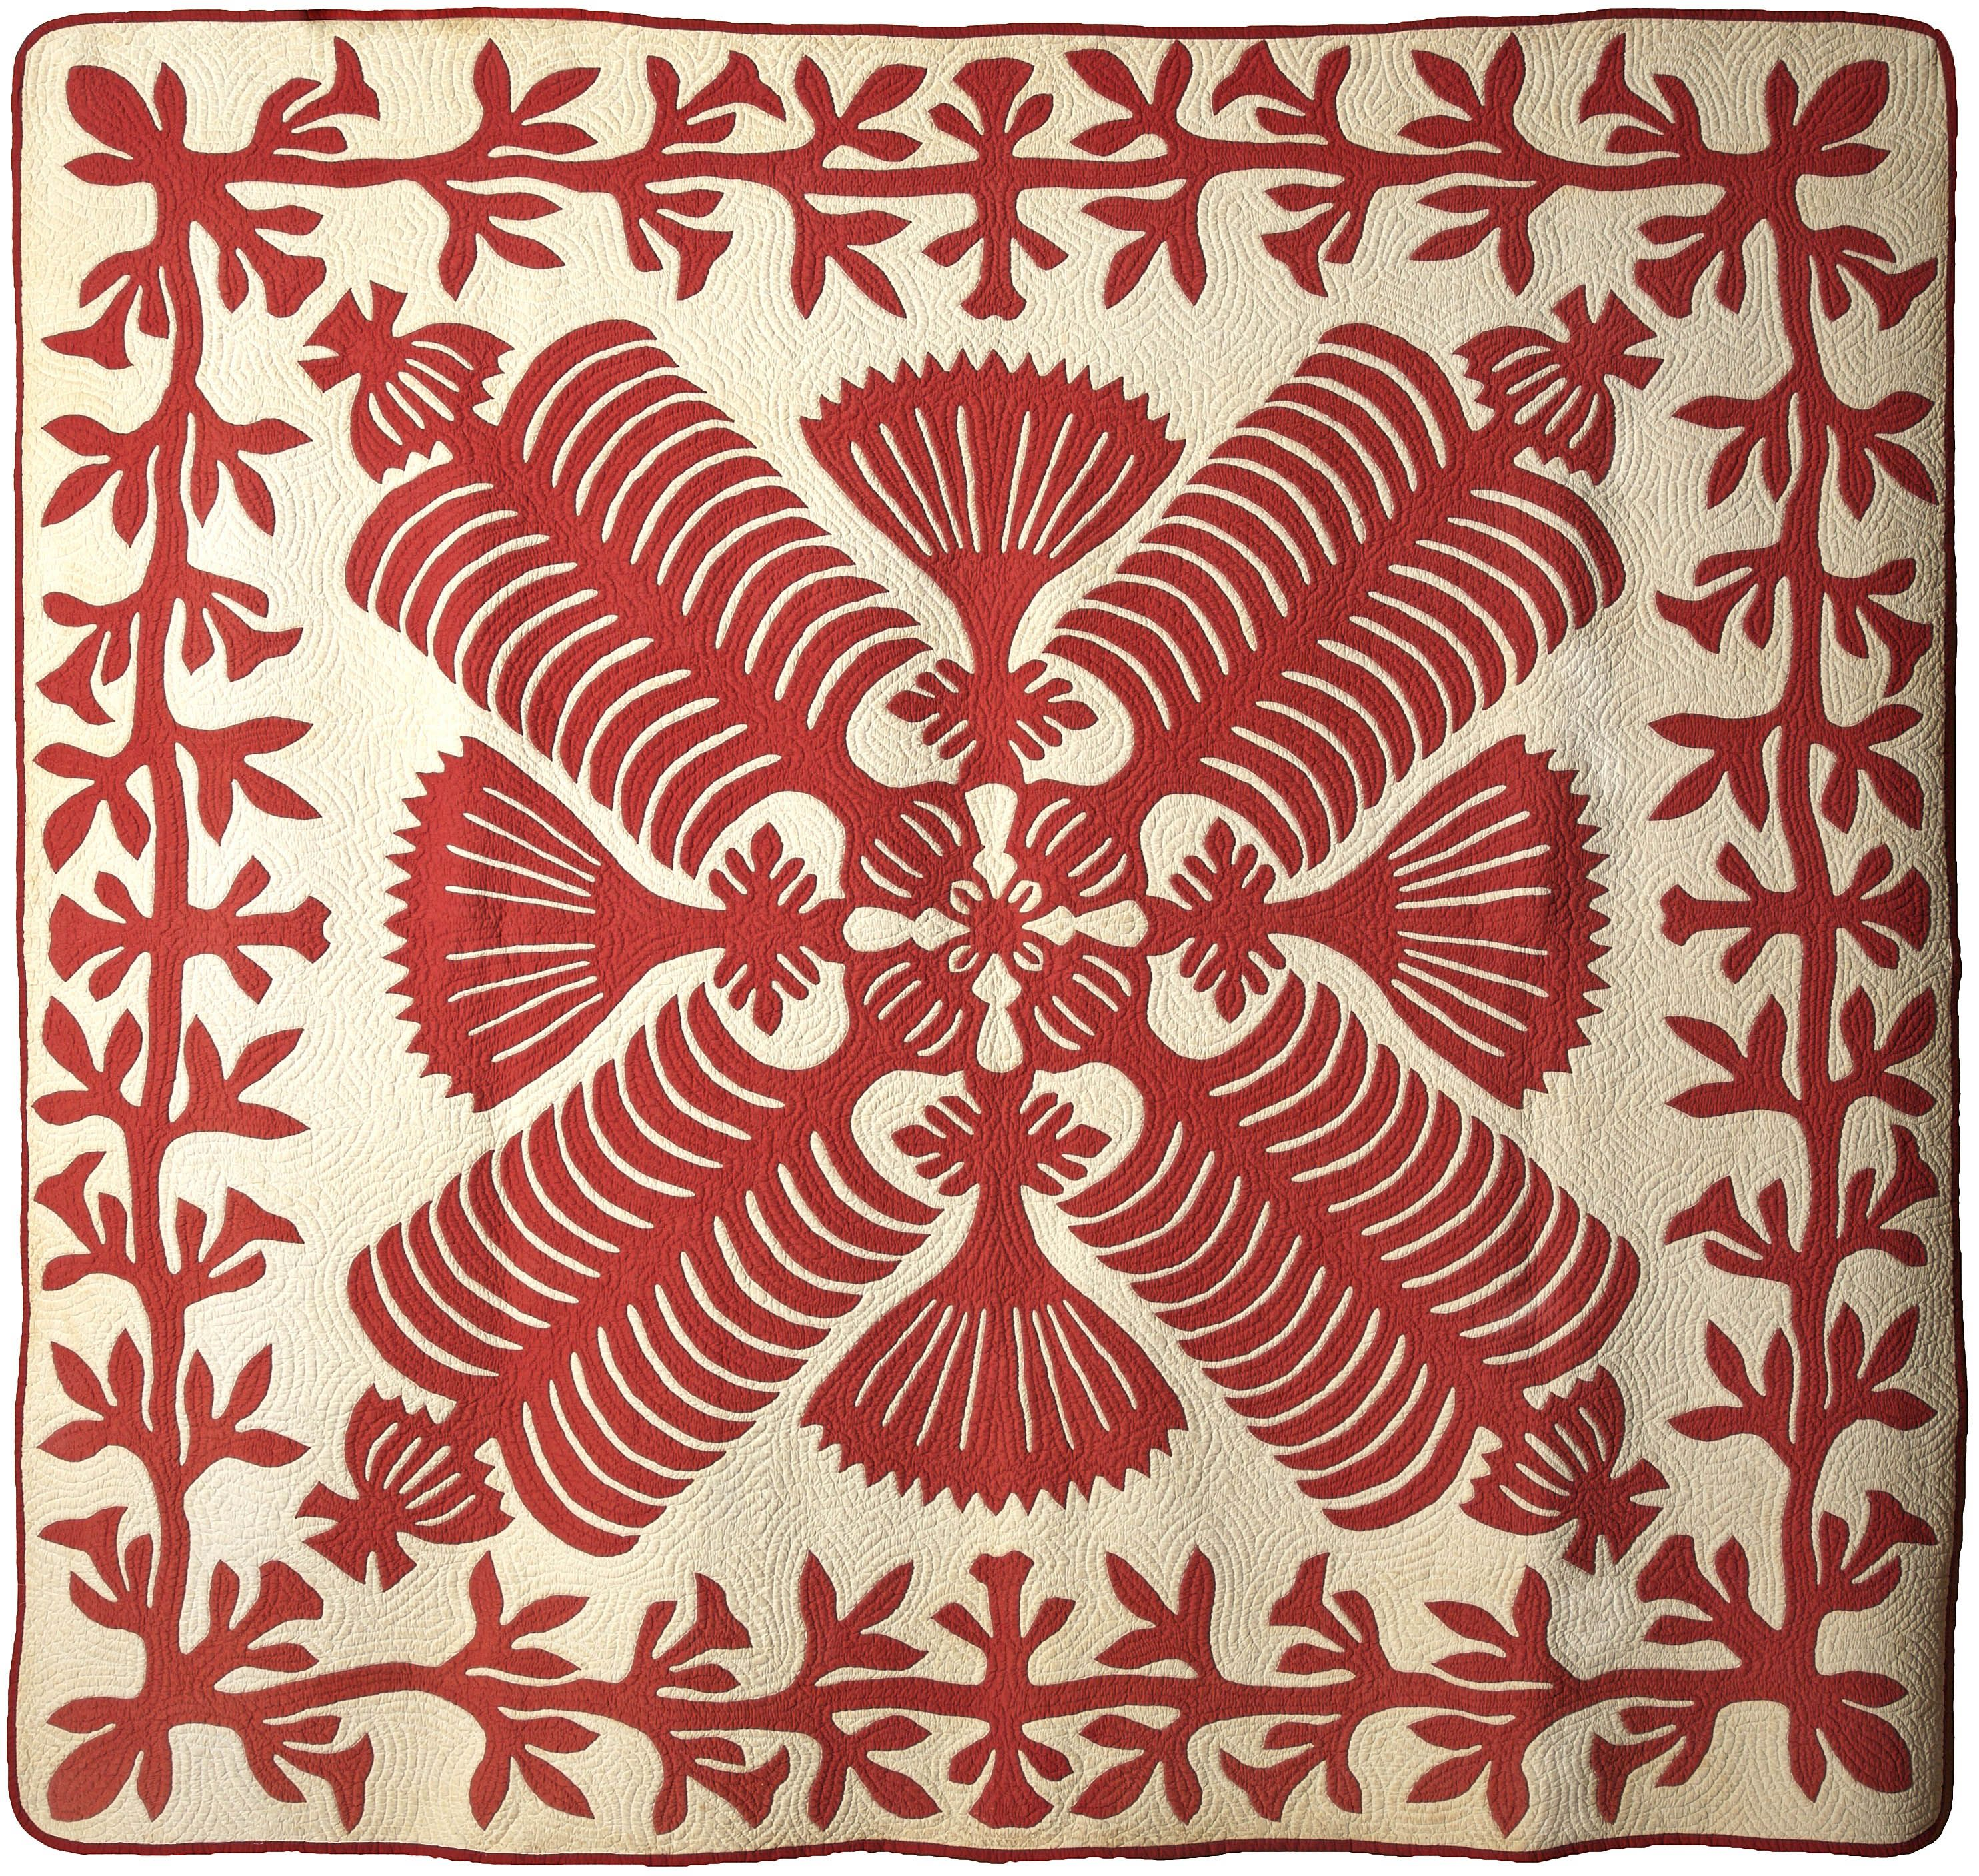 american quilts | Native American Quilt Patterns | QuILts SpLeNdEr ... : traditional american quilts - Adamdwight.com